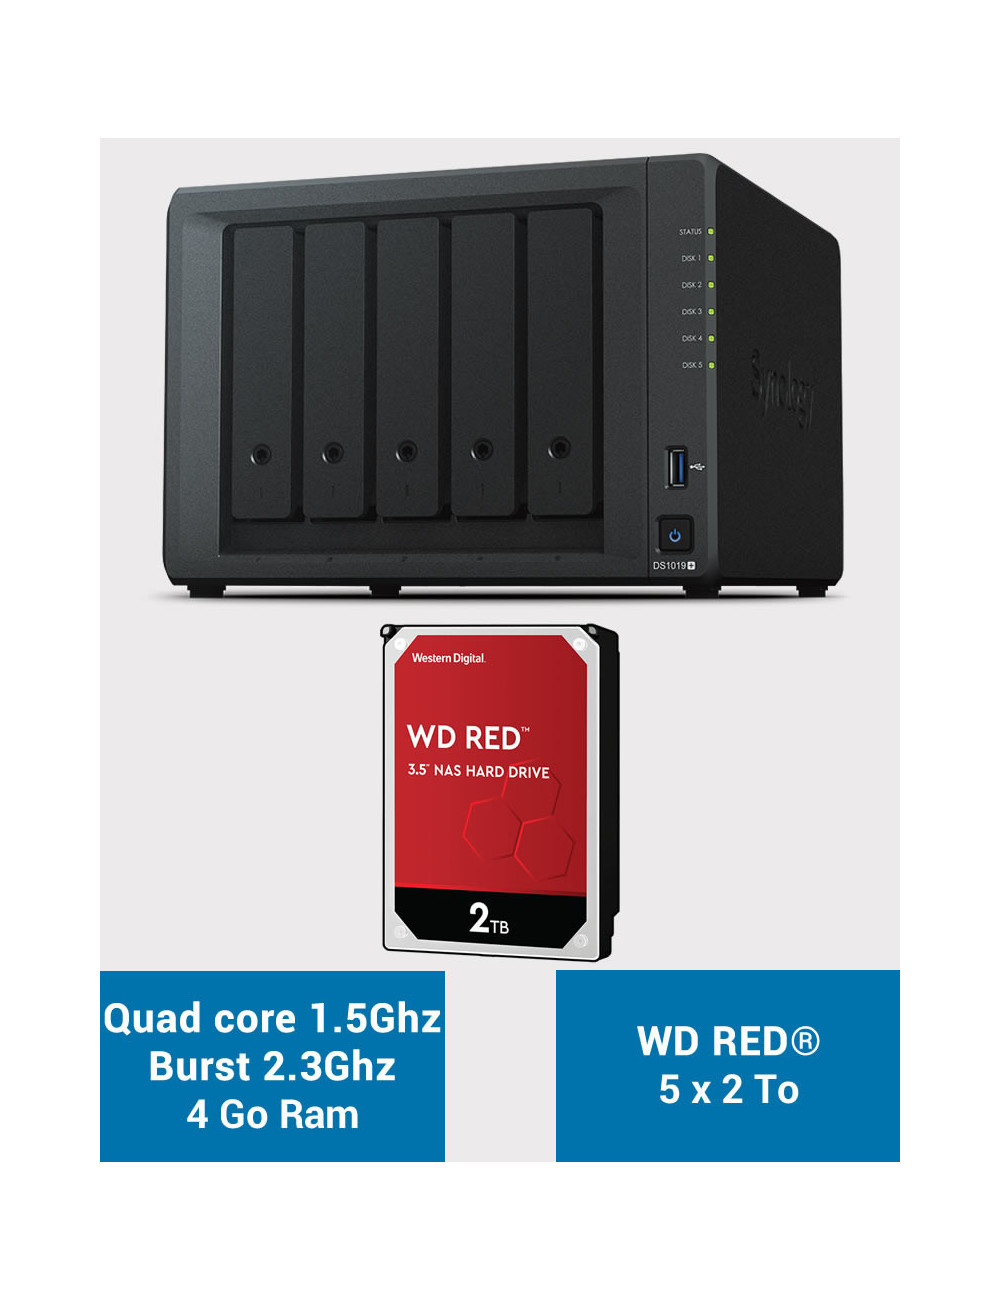 Synology DS1019+ NAS Server WD RED 10TB (5x2TB)